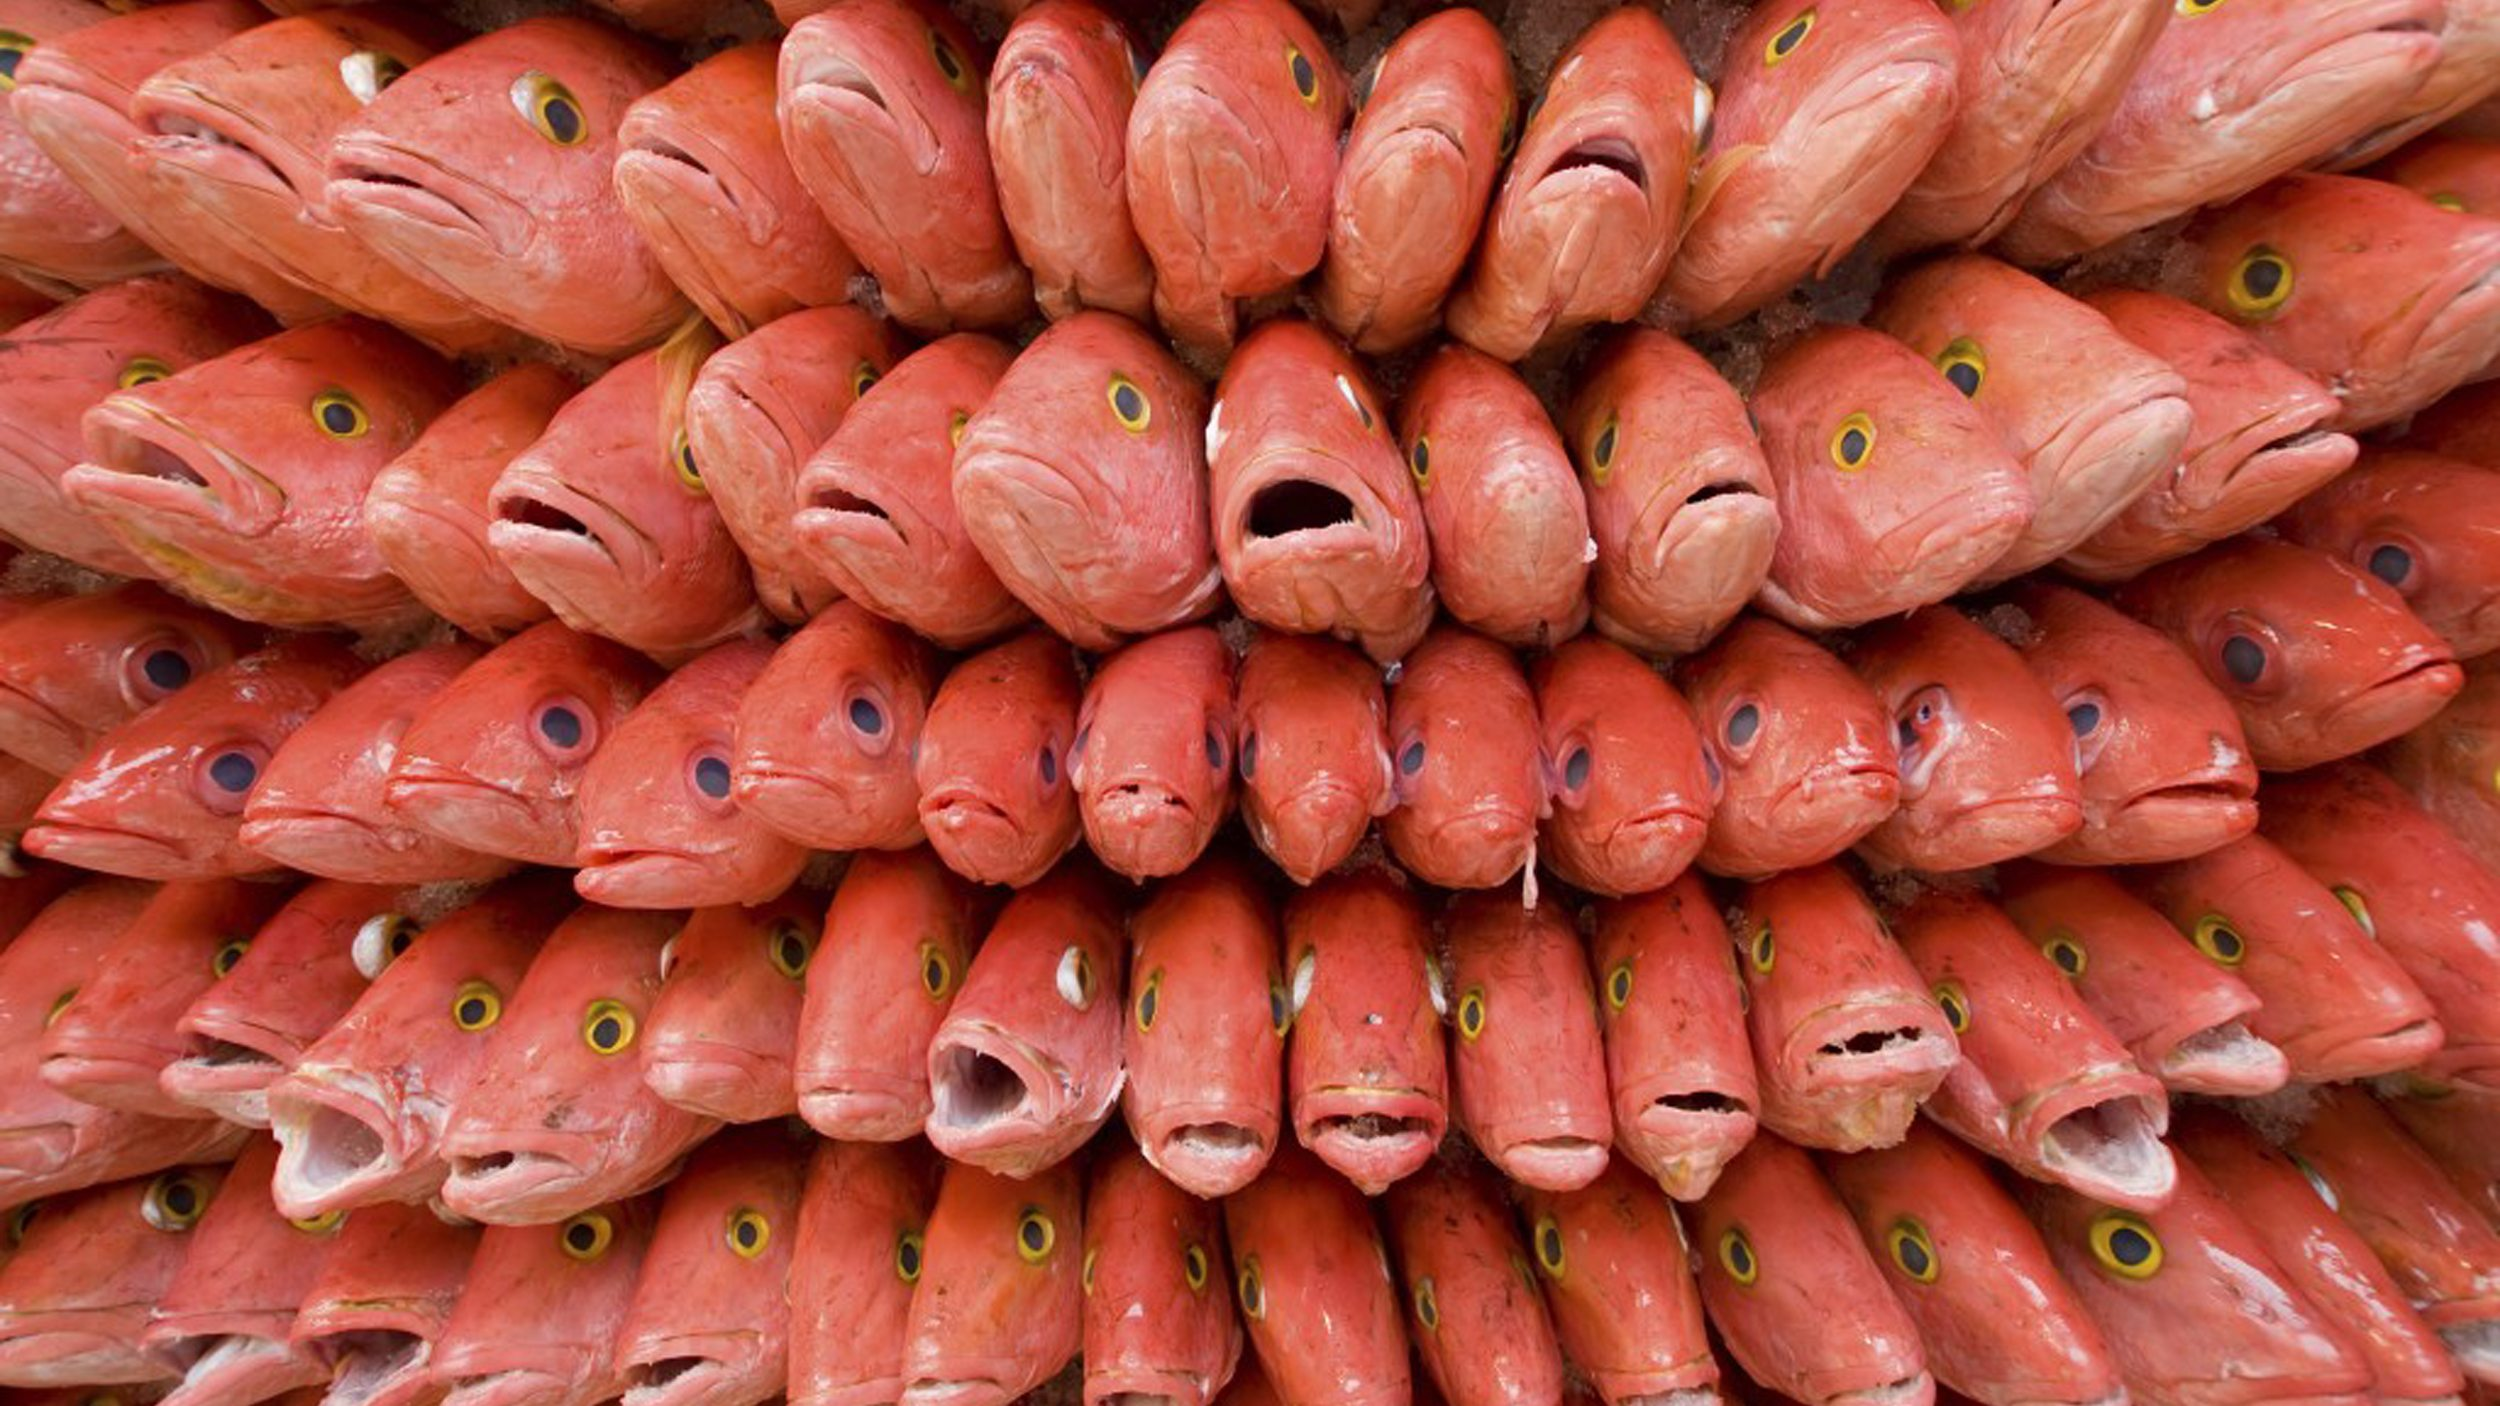 A bunch of frozen red snapper fish with their mouths open